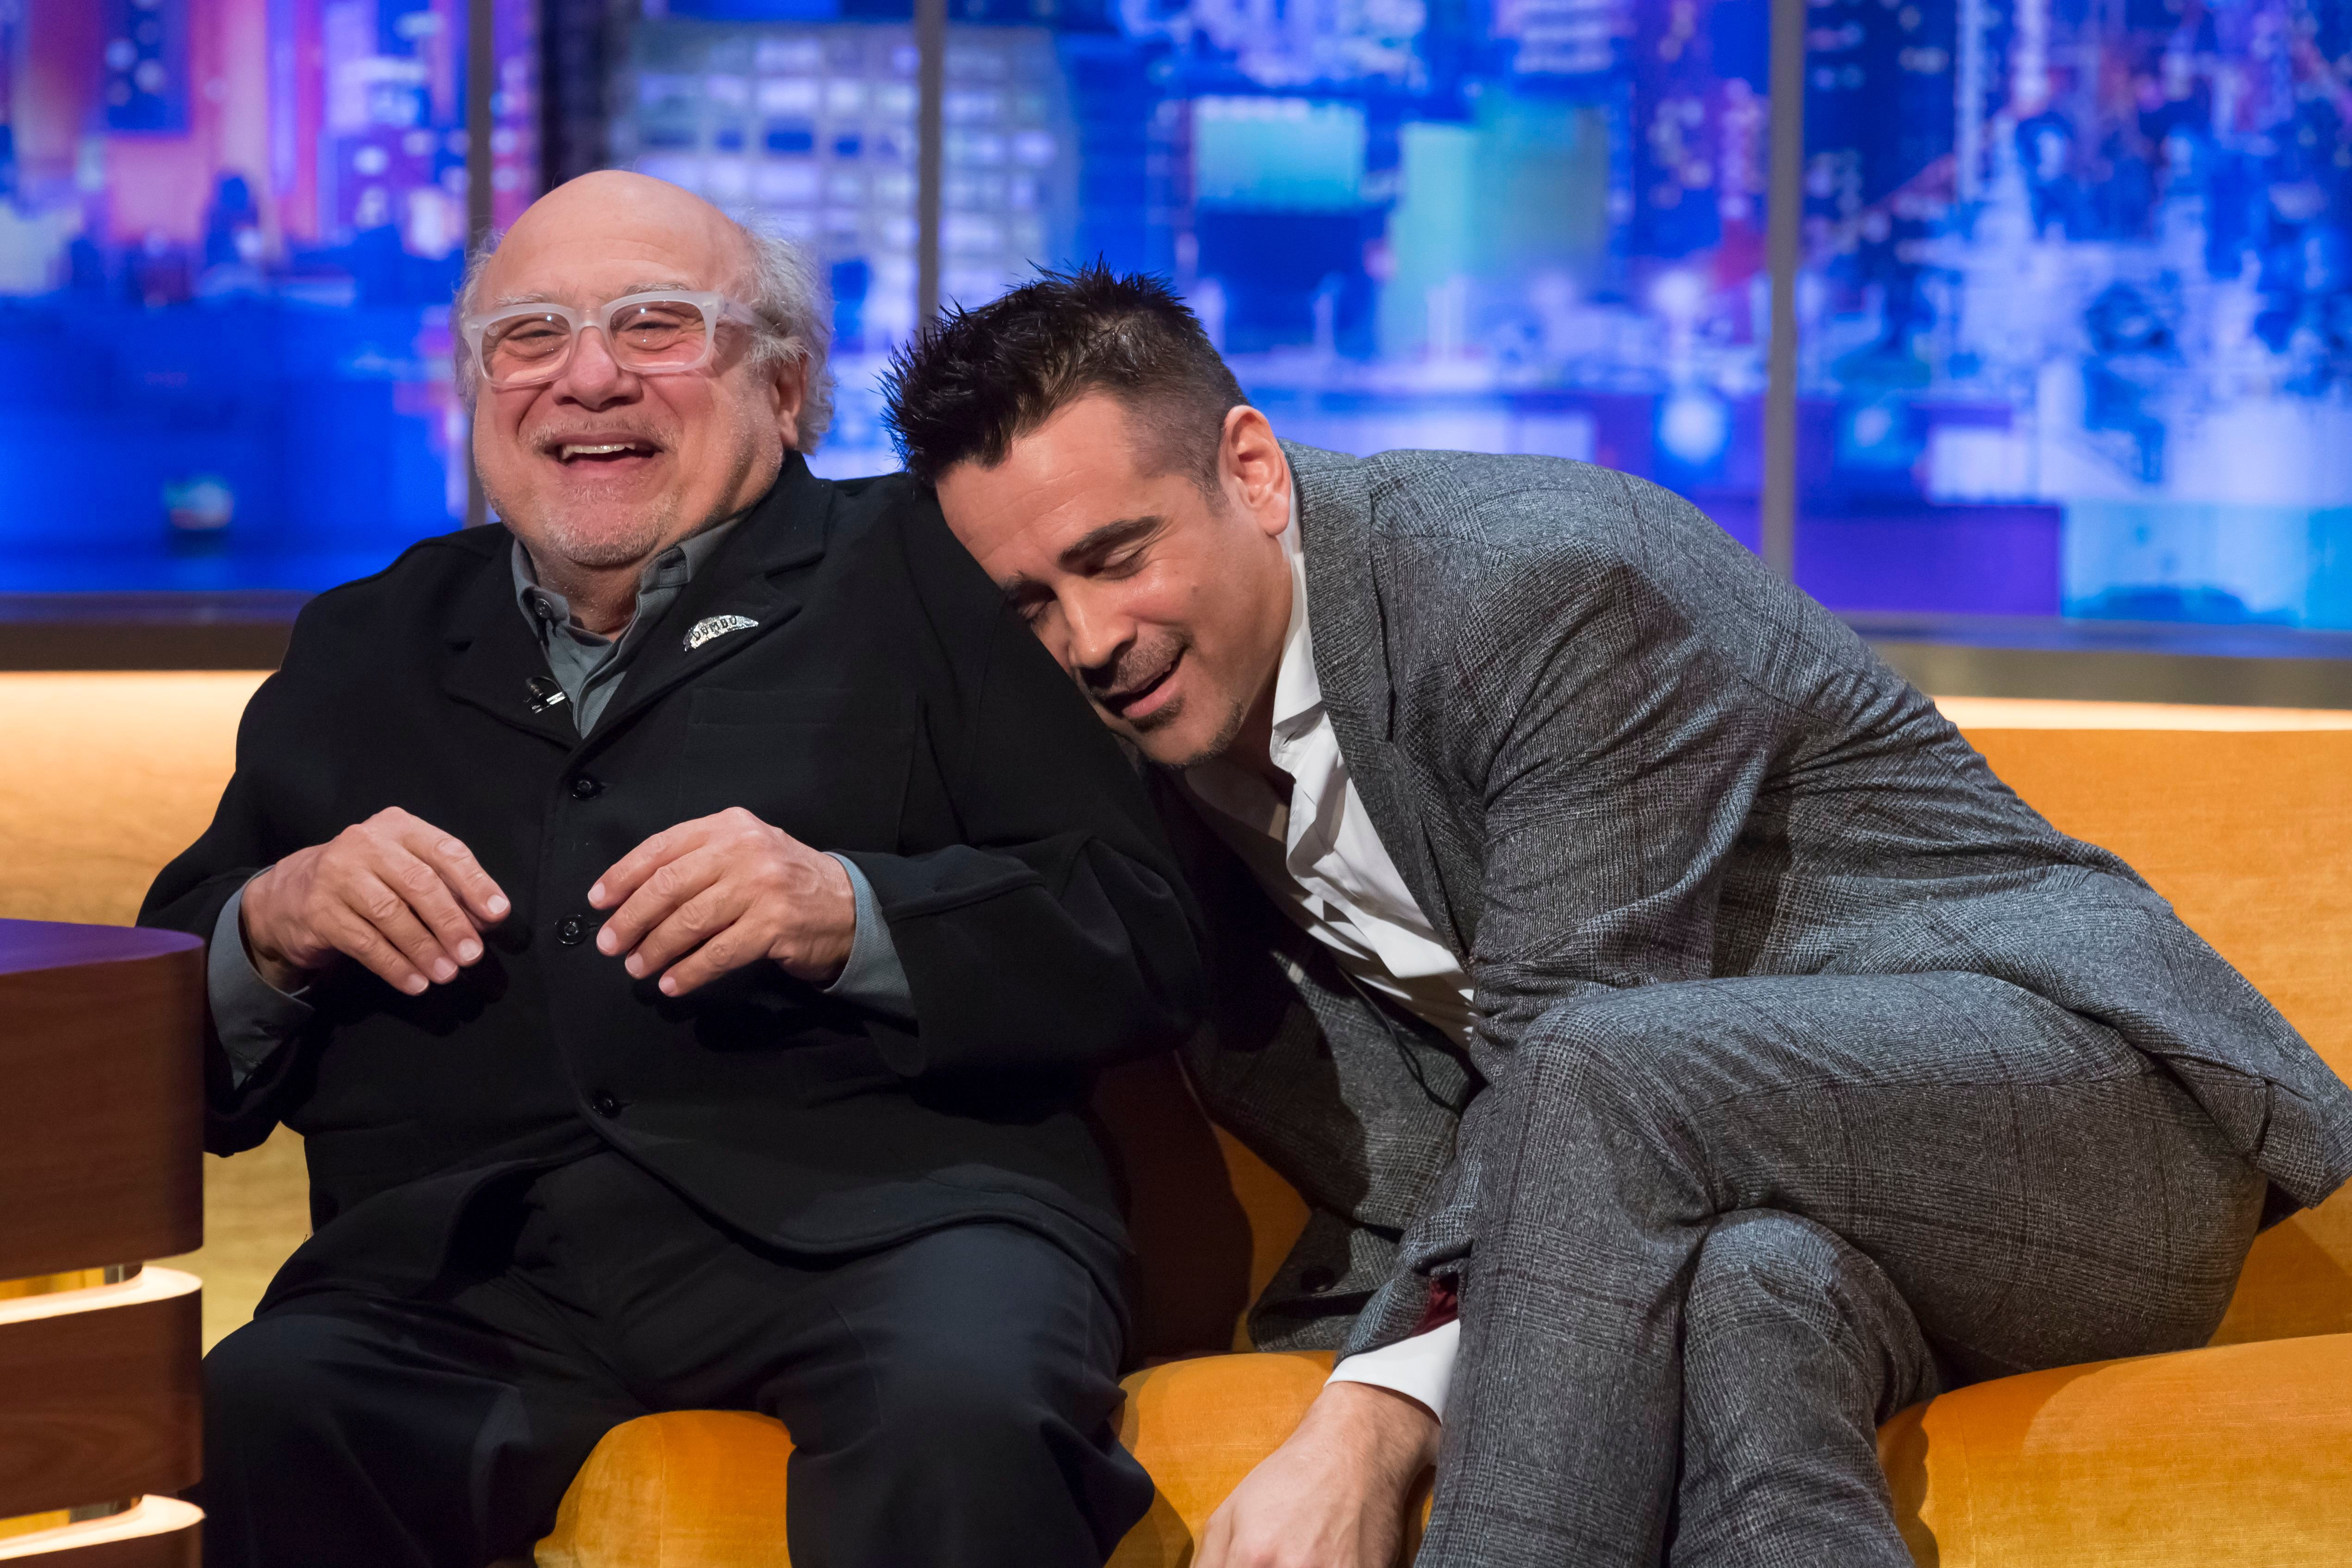 """Danny DeVito and Colin Farrell appear on """"The Jonathan Ross Show"""" TV show in London on March 22, 2019."""